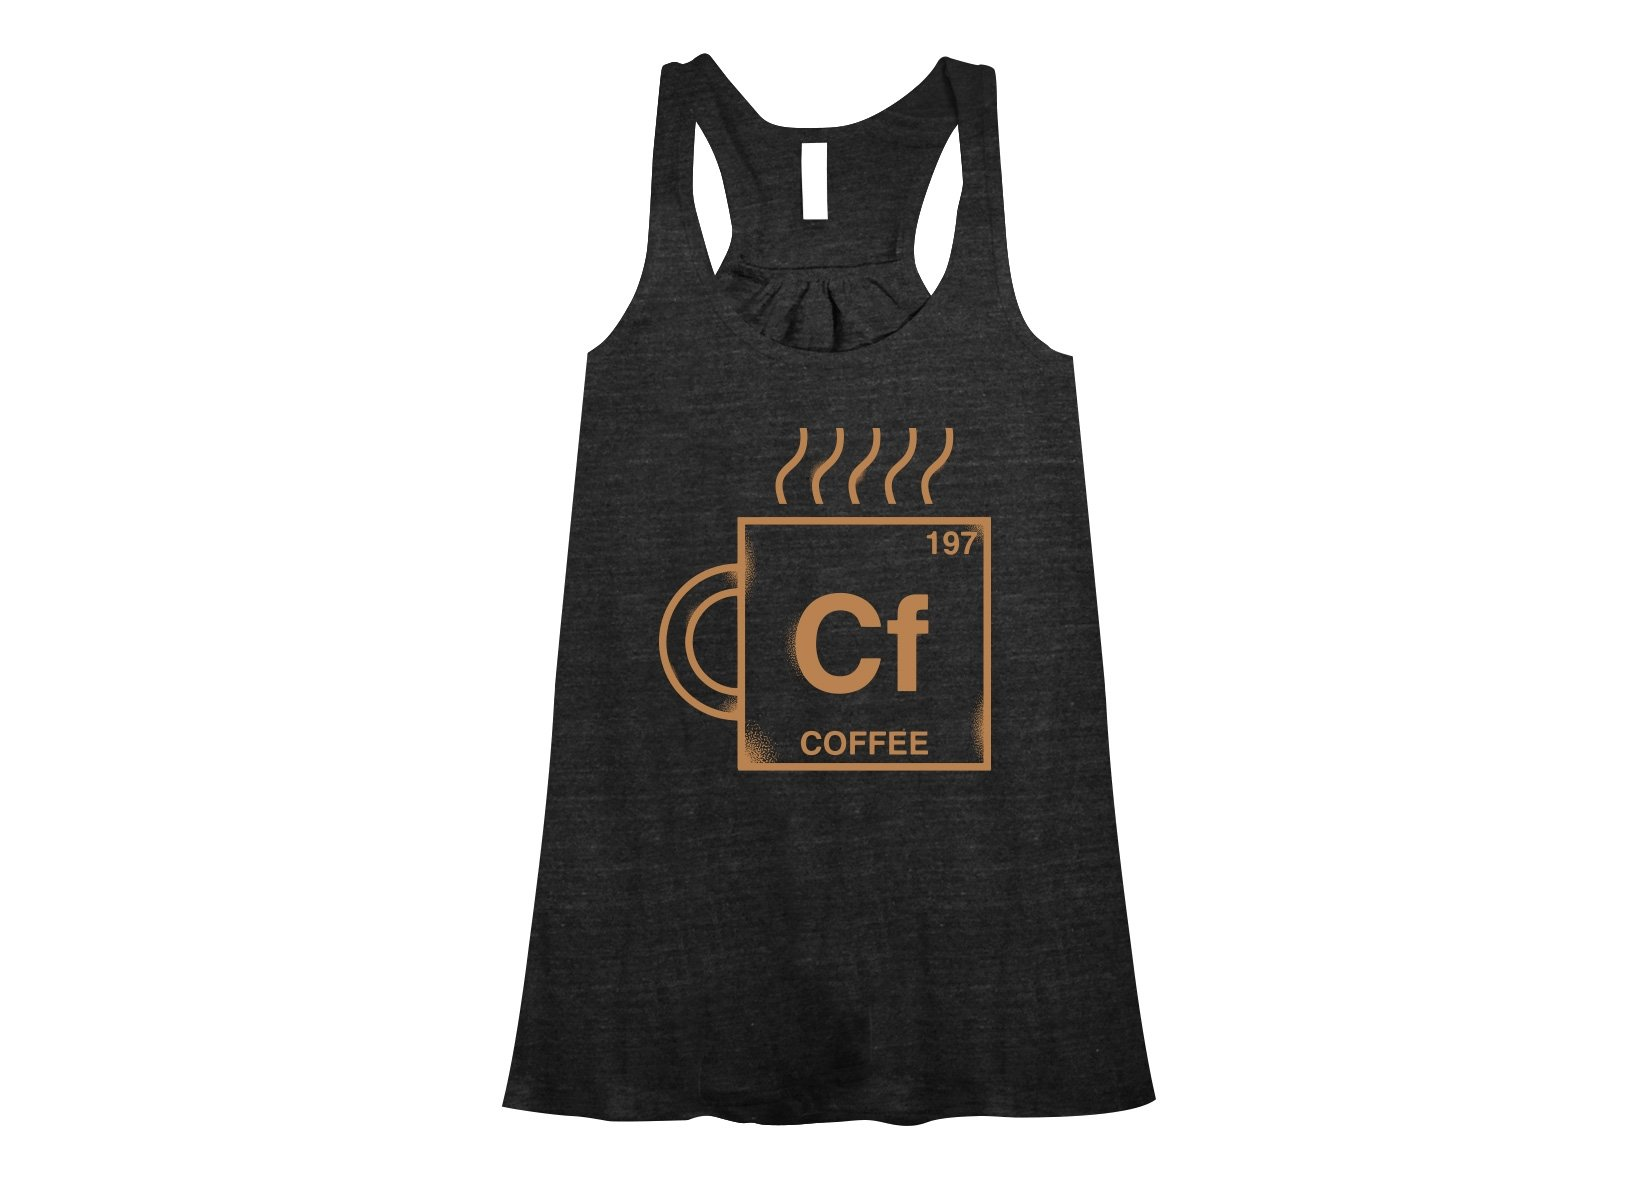 Coffee Element on Womens Tanks T-Shirt